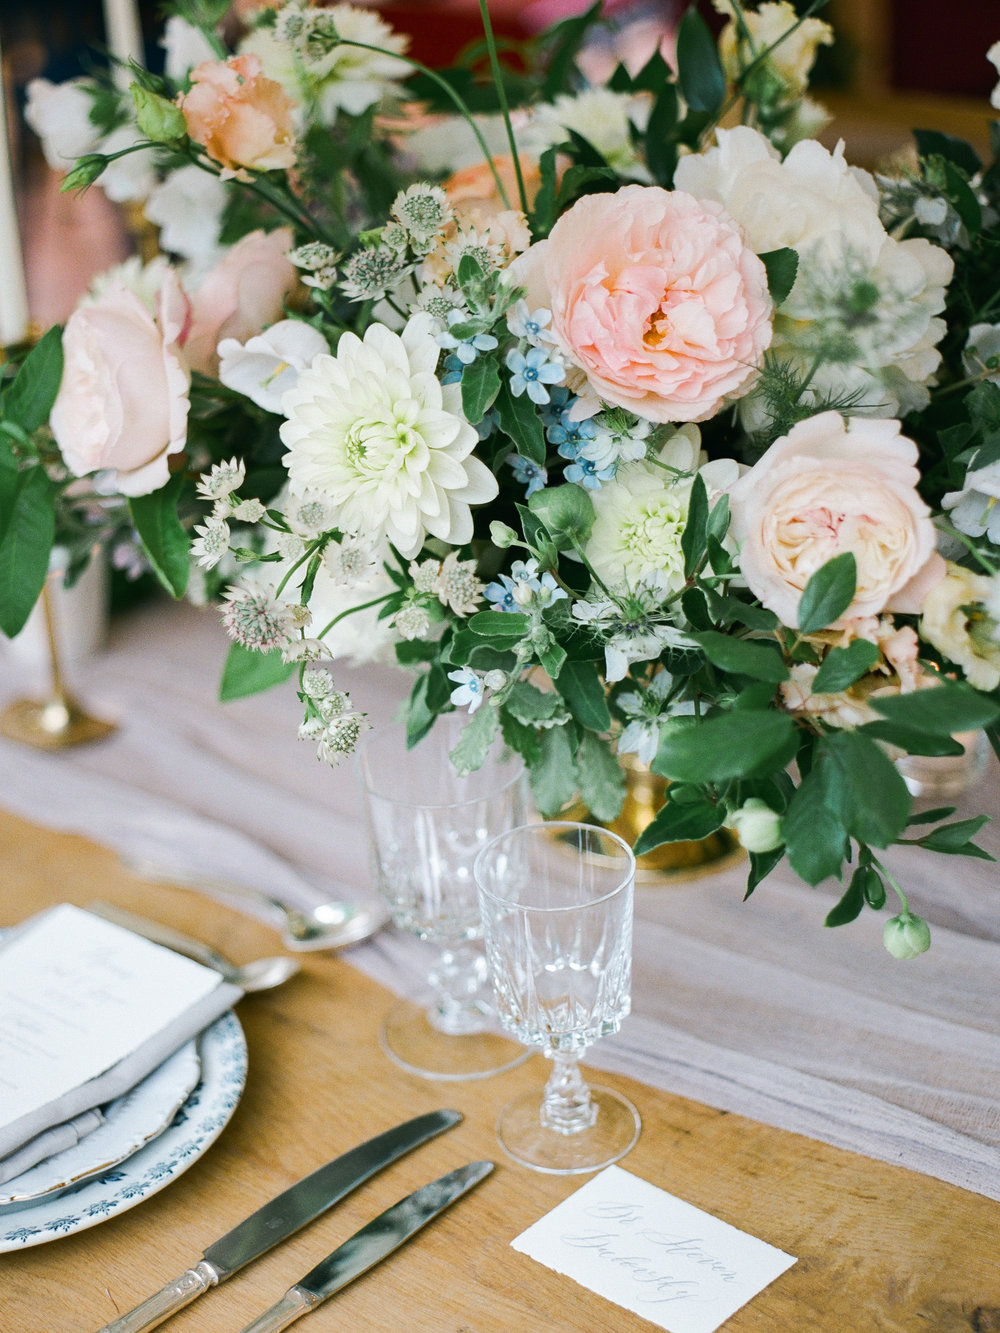 fine art wedding florist, foraged floral, pink, peach and white flowers at wedding in paris.jpg